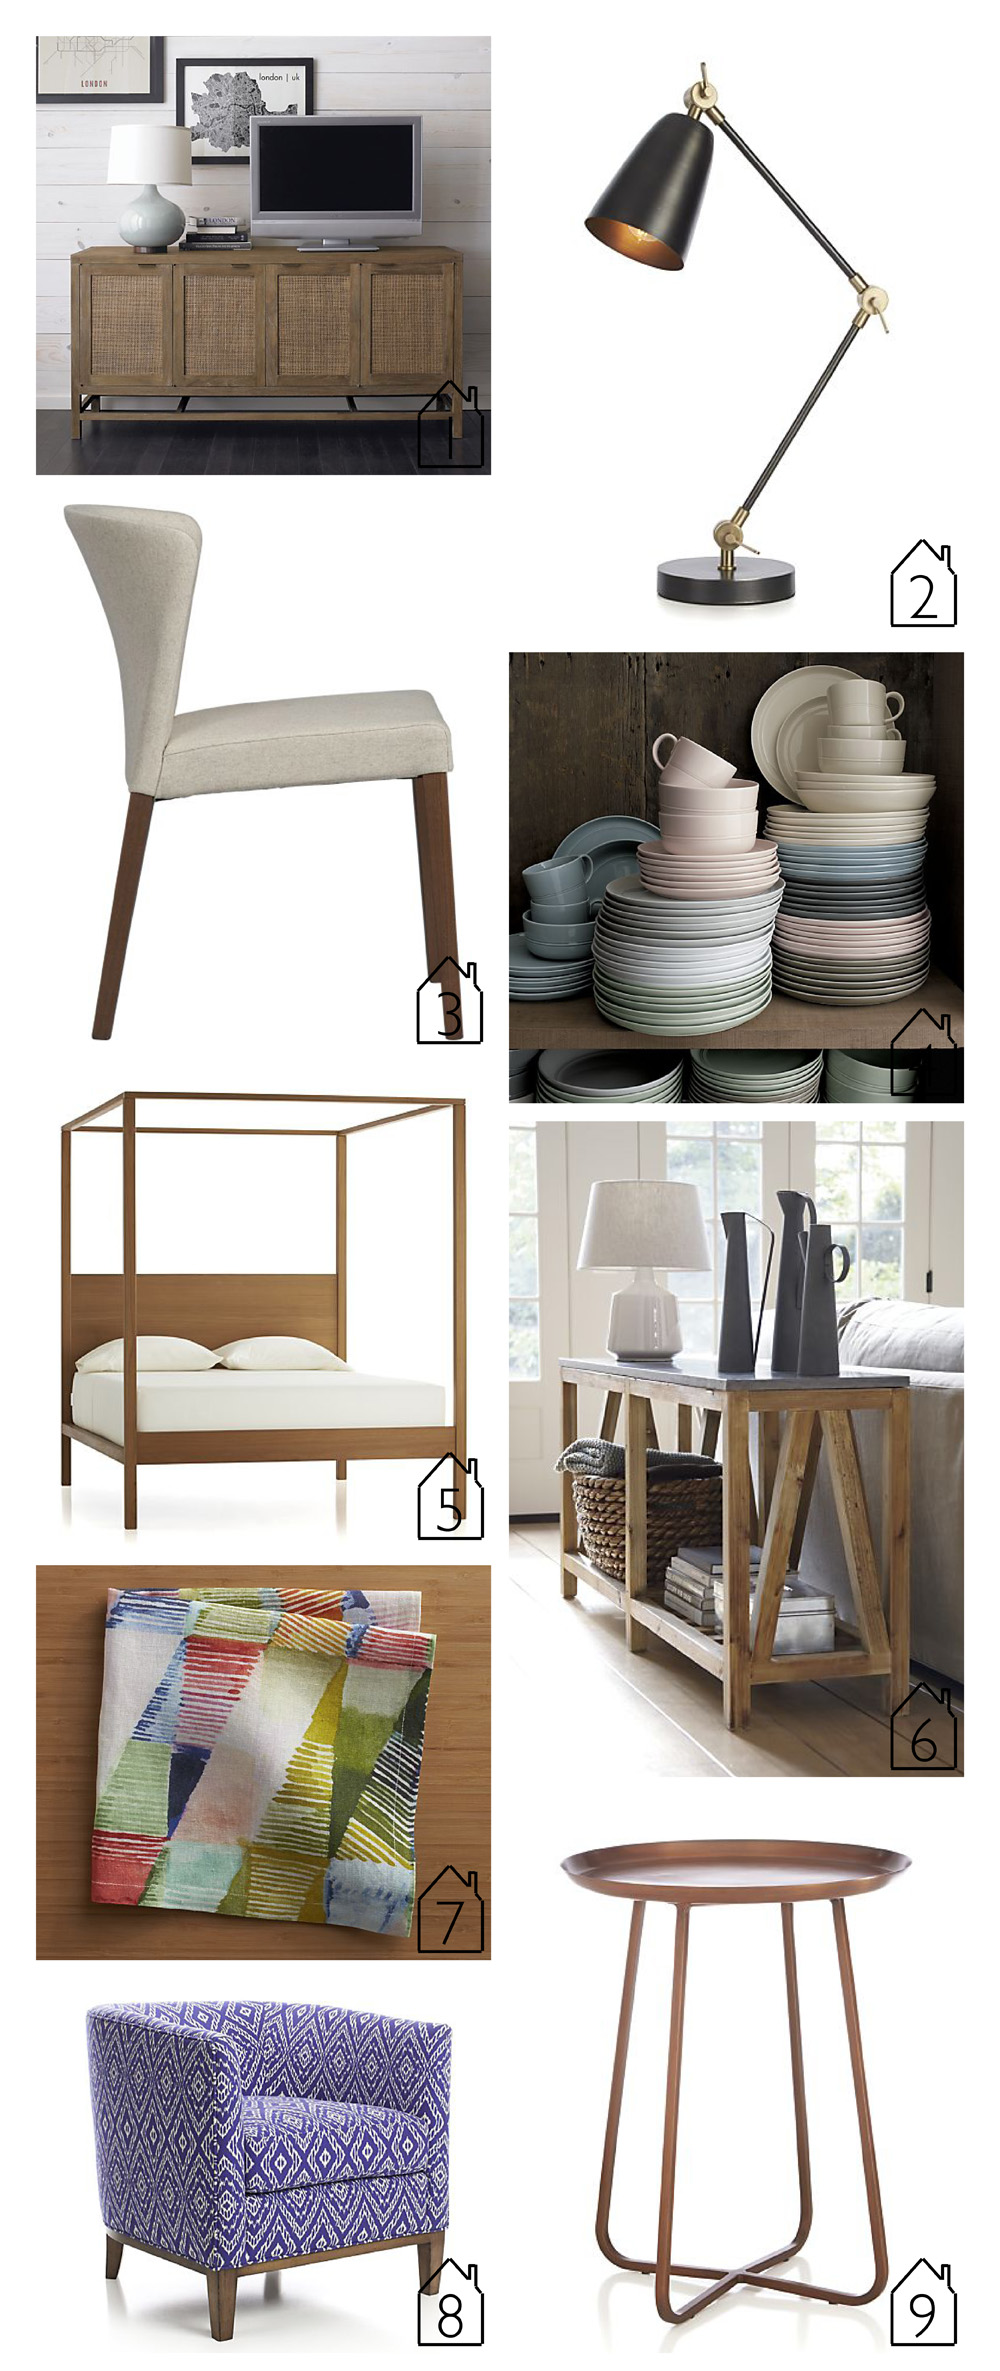 "1.  Blake Grey Wash 68"" Media Console   2.  Cole Task Lamp   3.  Curran Side Chair  4.  Hue Dinnerware   5.  Osborn Four Poster Bed   6.  Bluestone Console Table   7.  Ceres Napkin   8.  Drew Chair   9.  Penelope Accent Table"